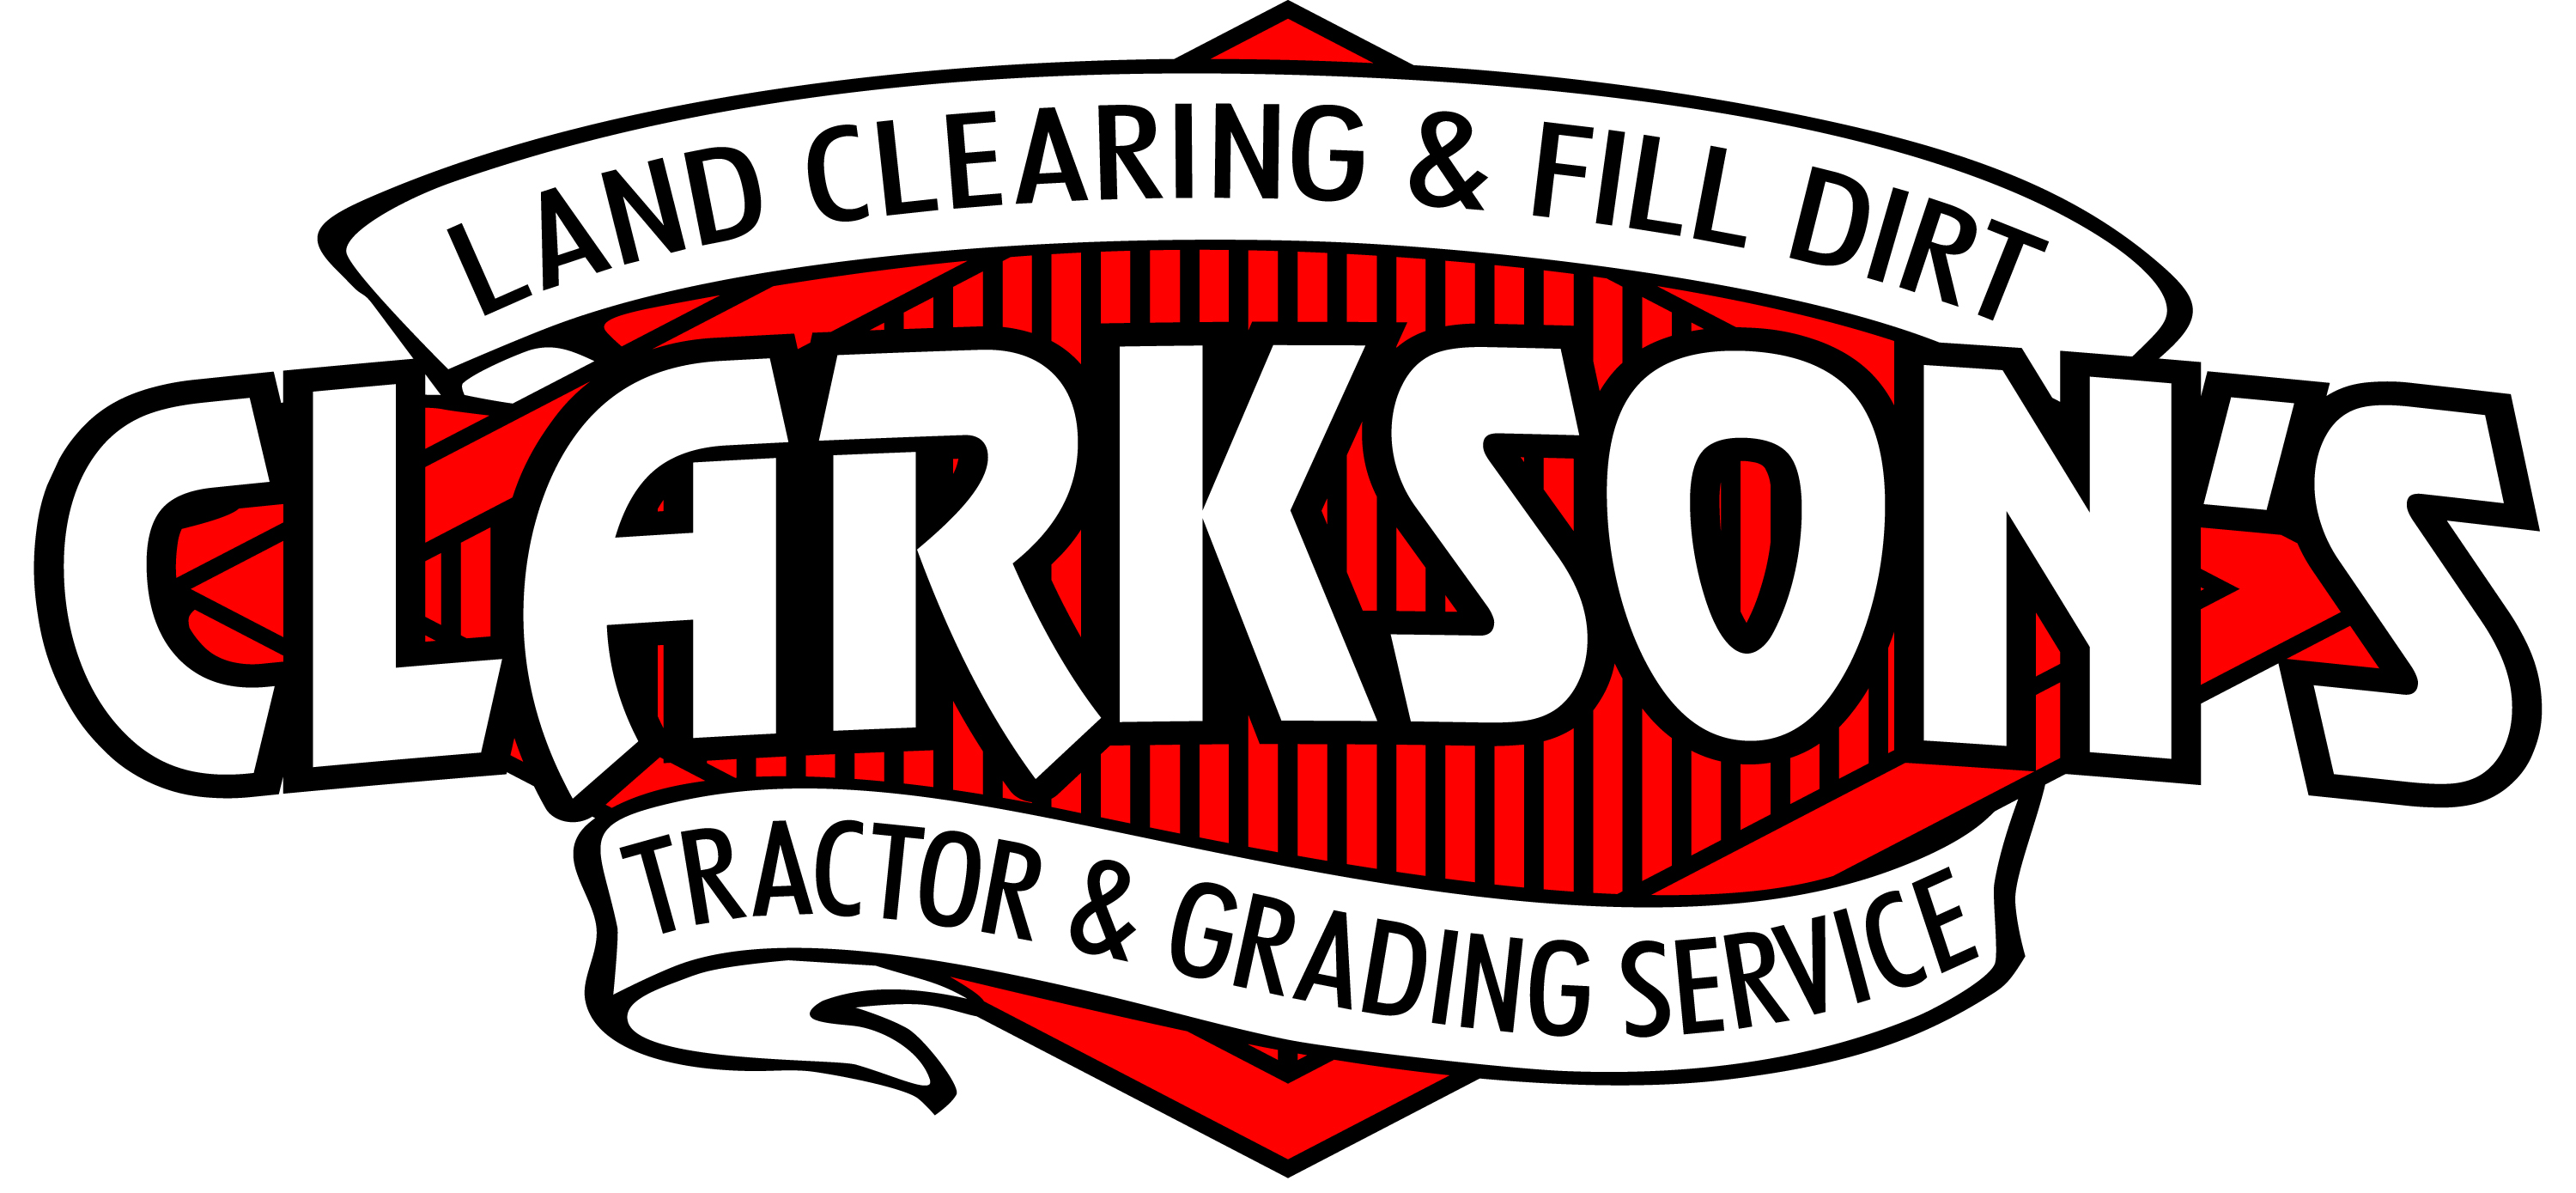 Clarkson Land Clearing, Fill Dirt, Tractor and GradingService